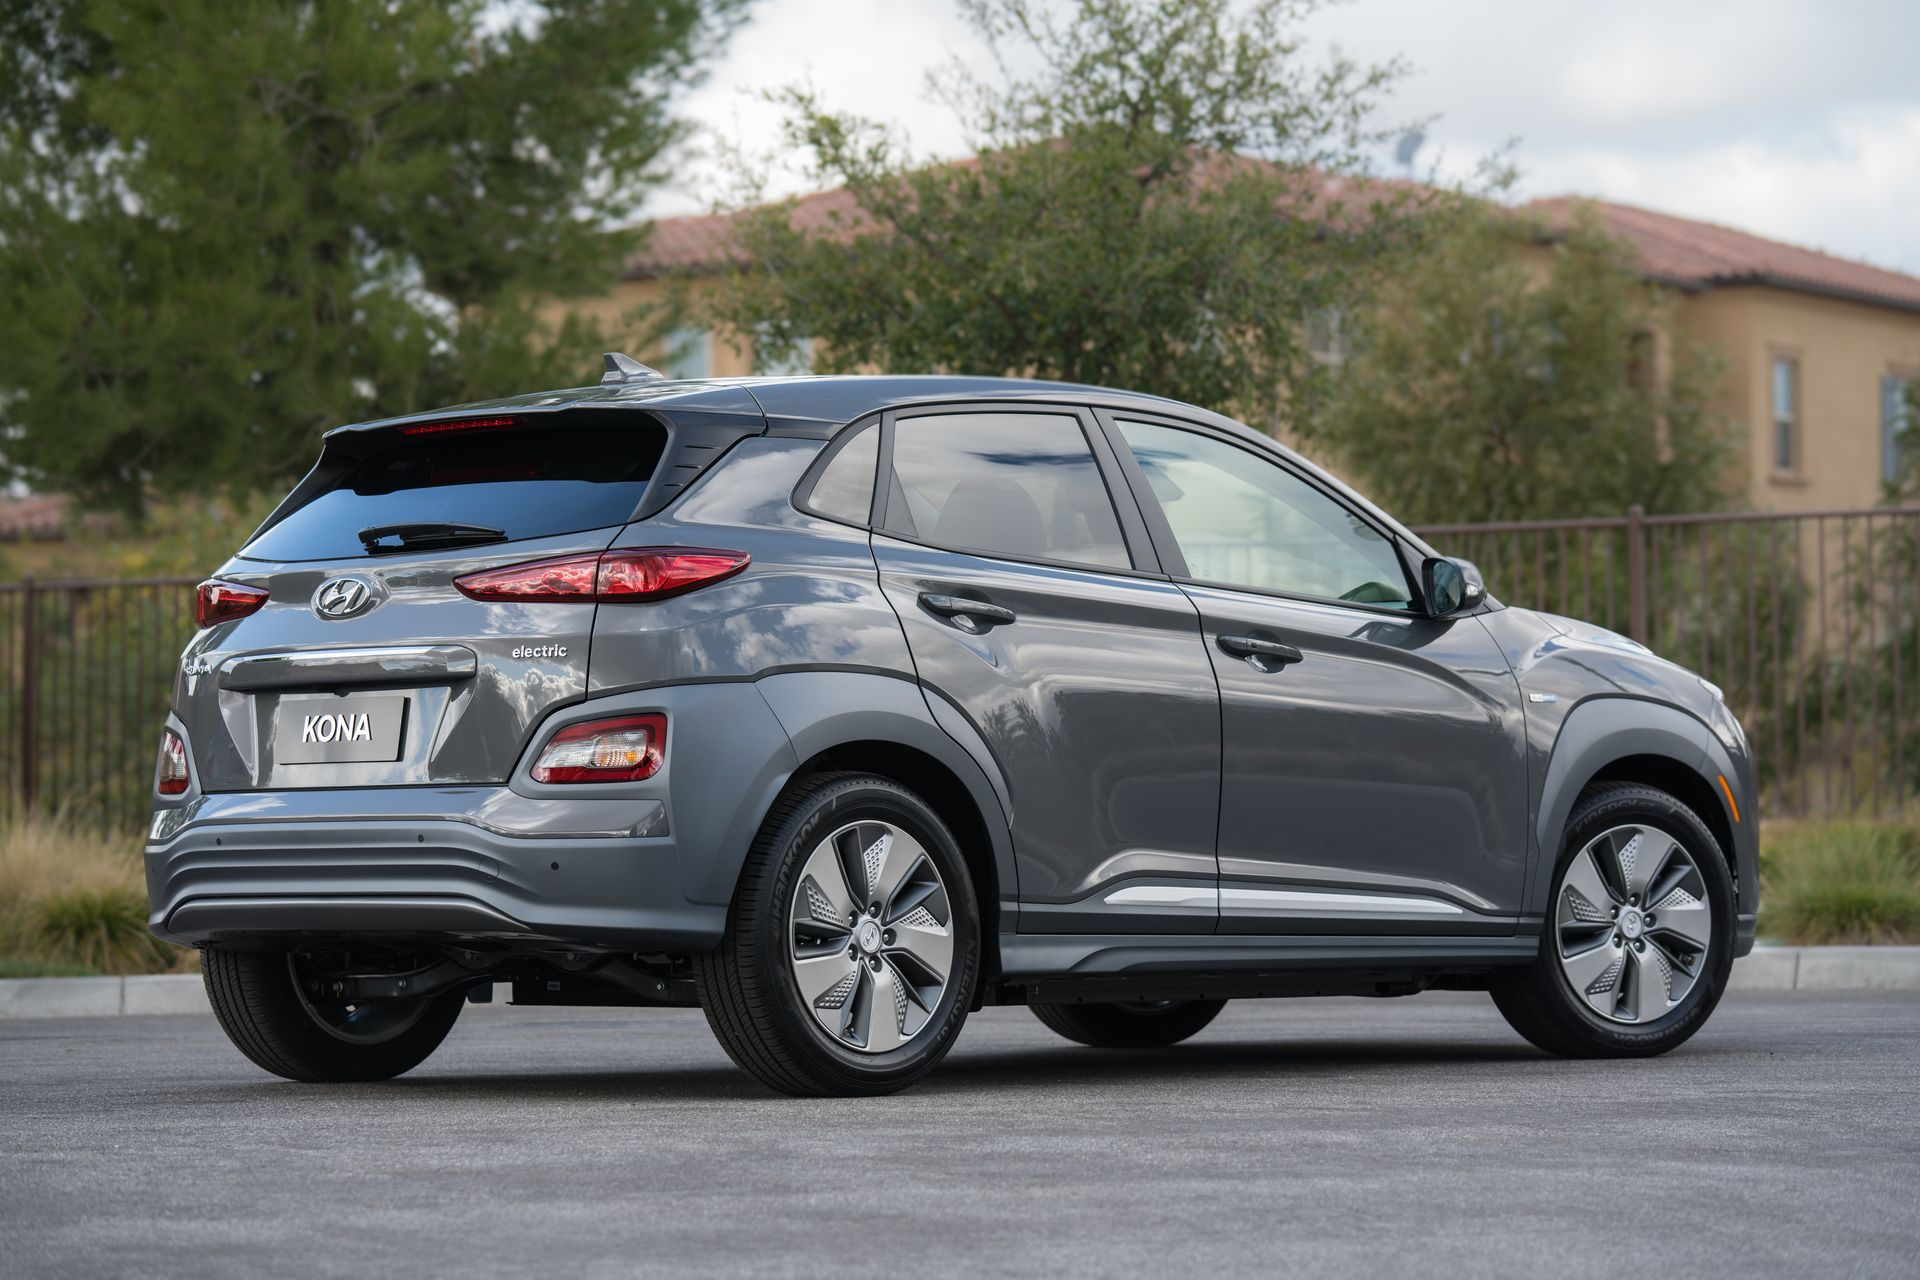 hyundai kona electric suv india launch date and price revealed gaadikey. Black Bedroom Furniture Sets. Home Design Ideas